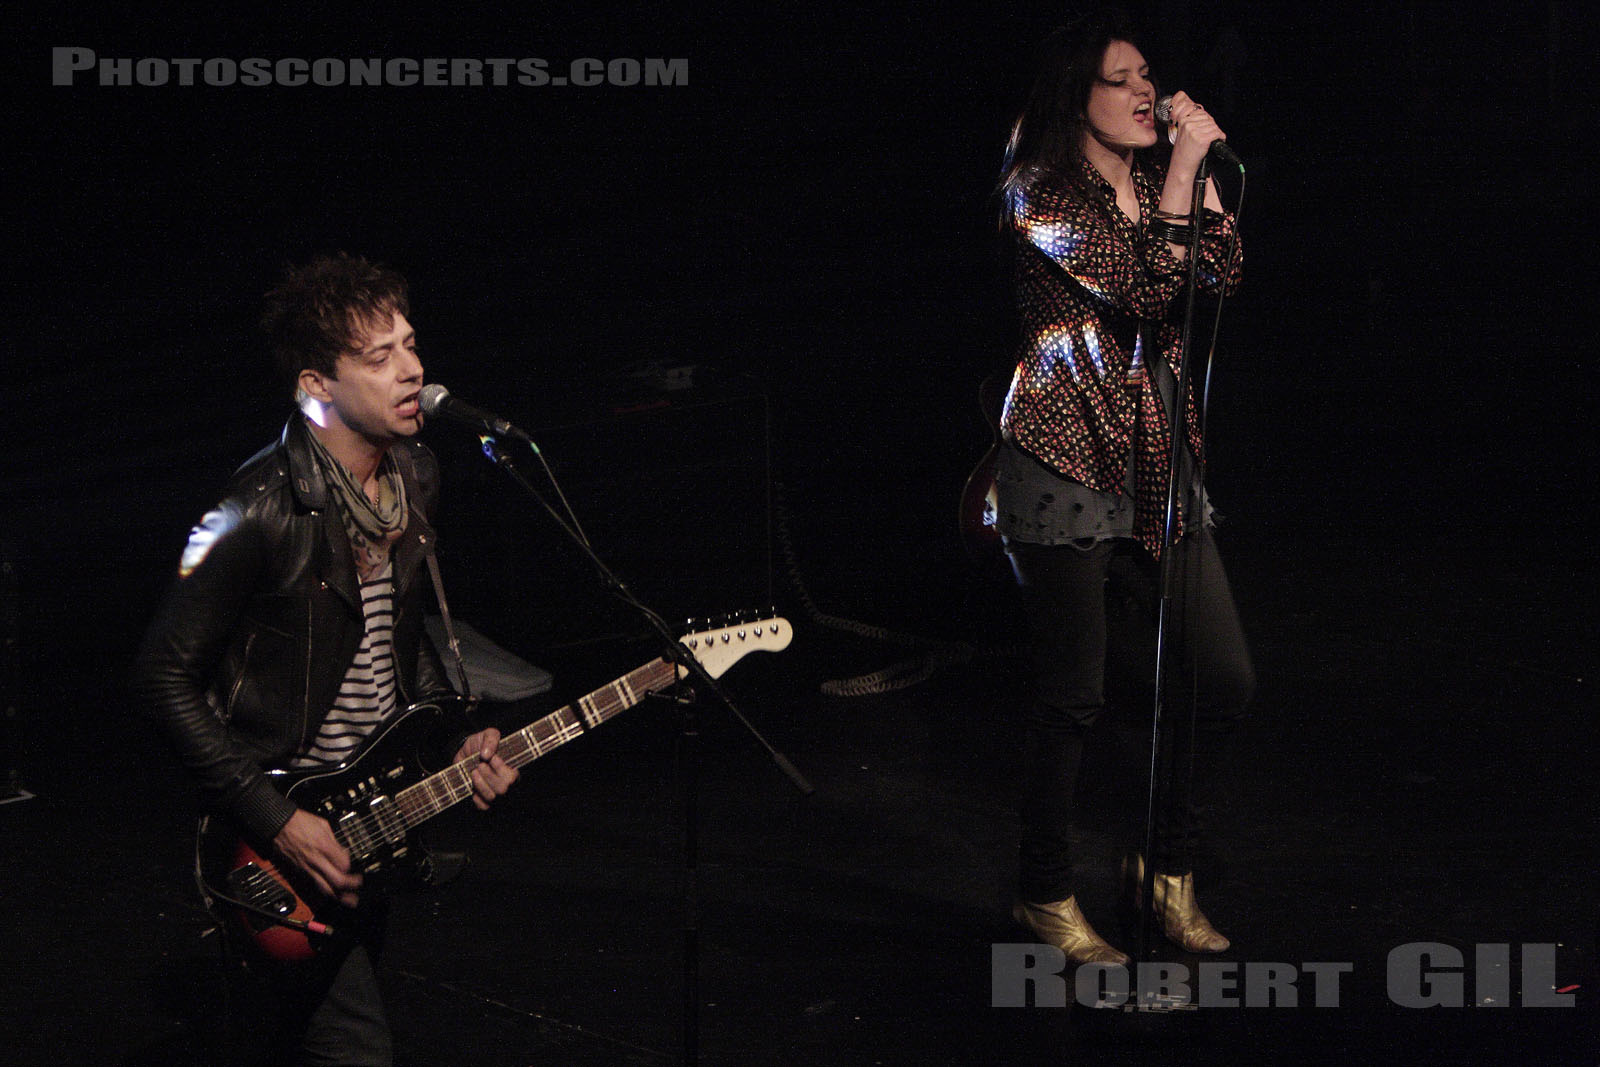 THE KILLS - 2008-10-28 - PARIS - Le Bataclan